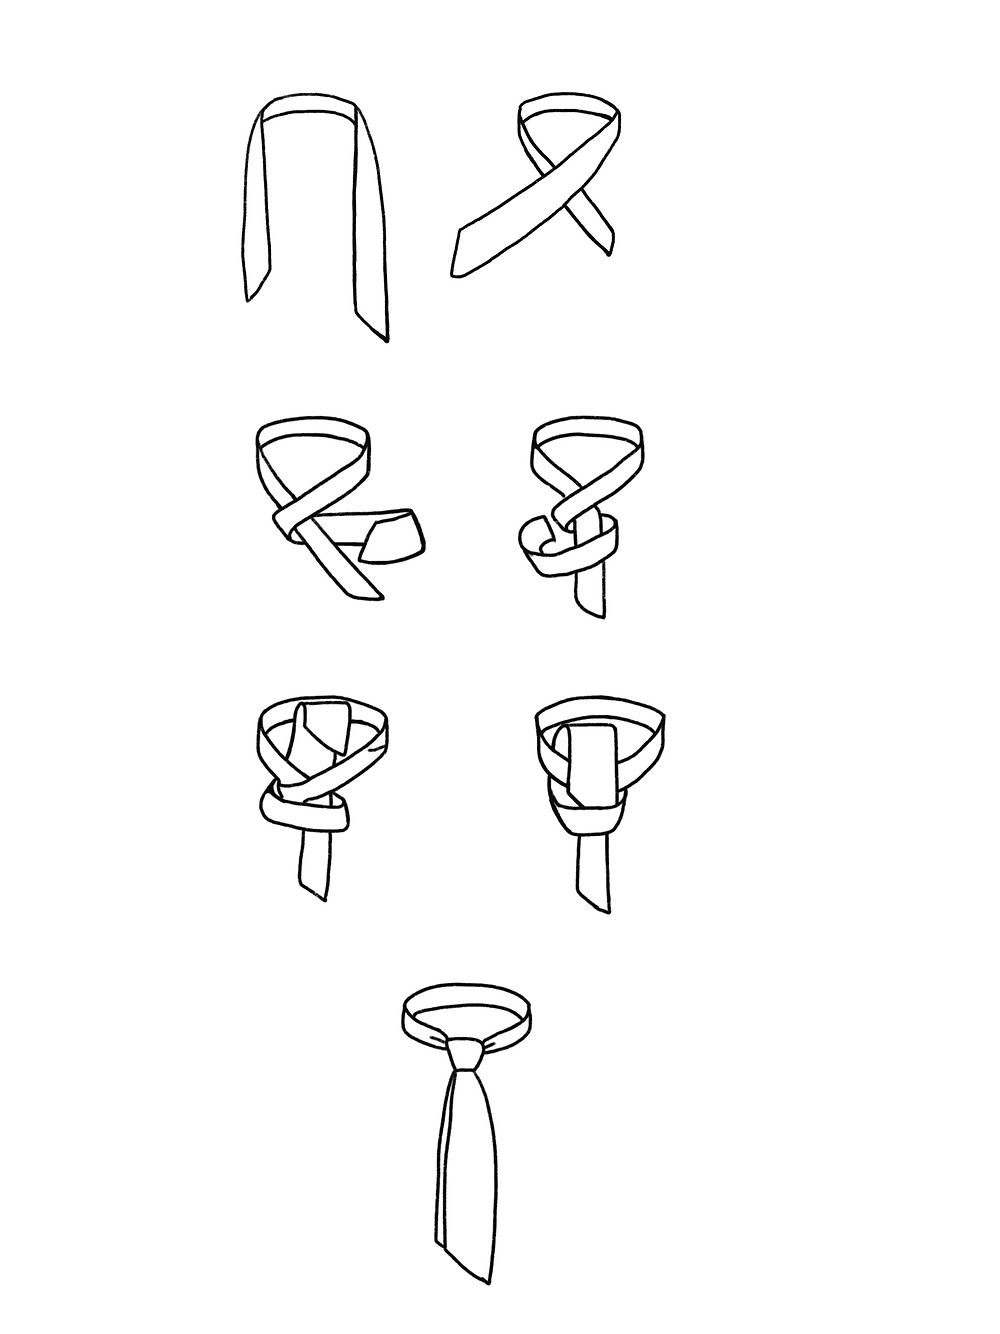 CARMENTA - drawing neck tie knot tutorial, Costa Rica design and art printed on fabric